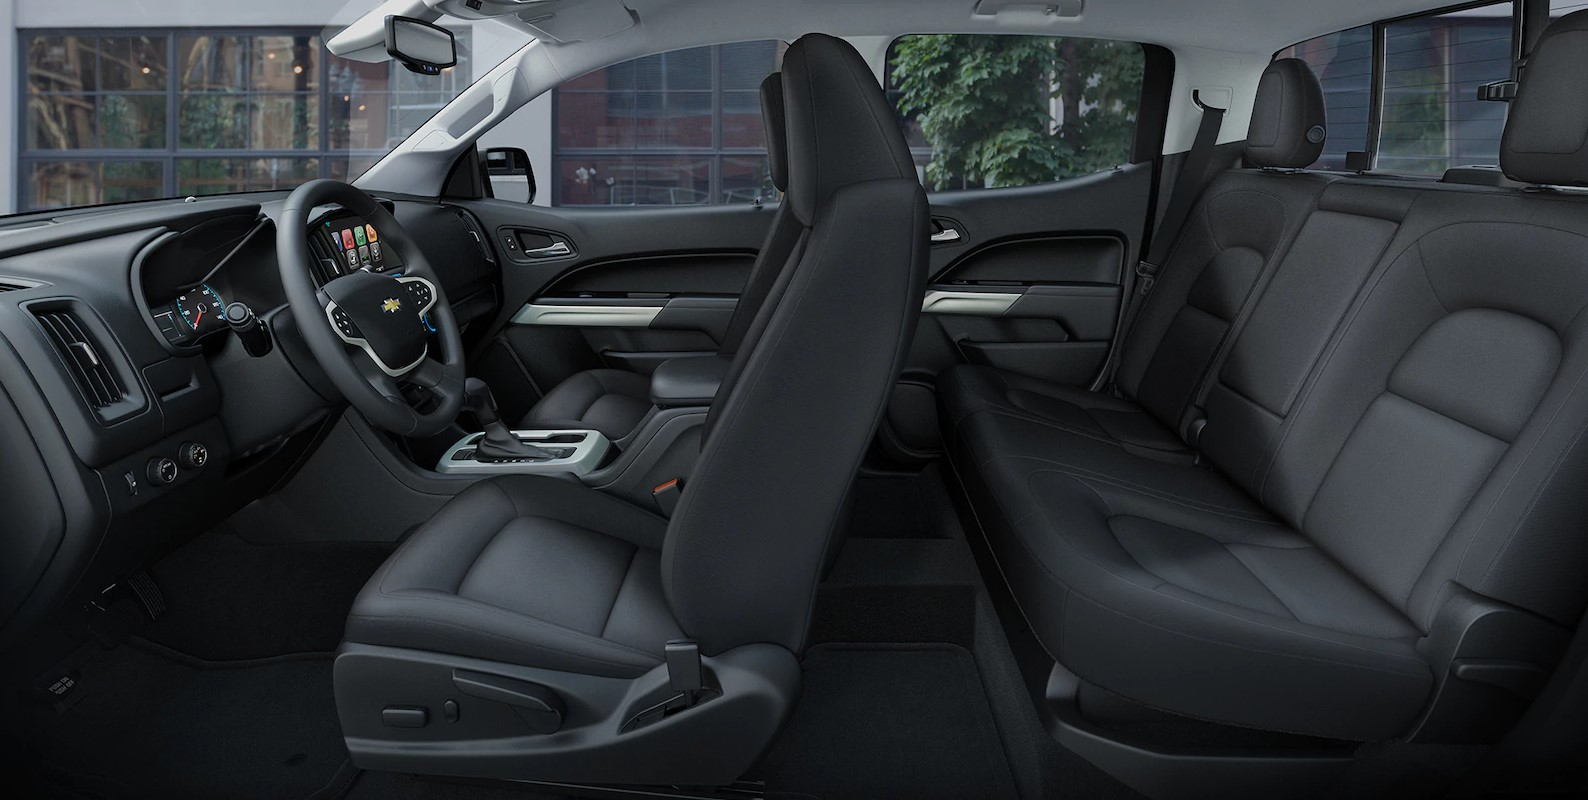 2018 Chevrolet Colorado Black Interior